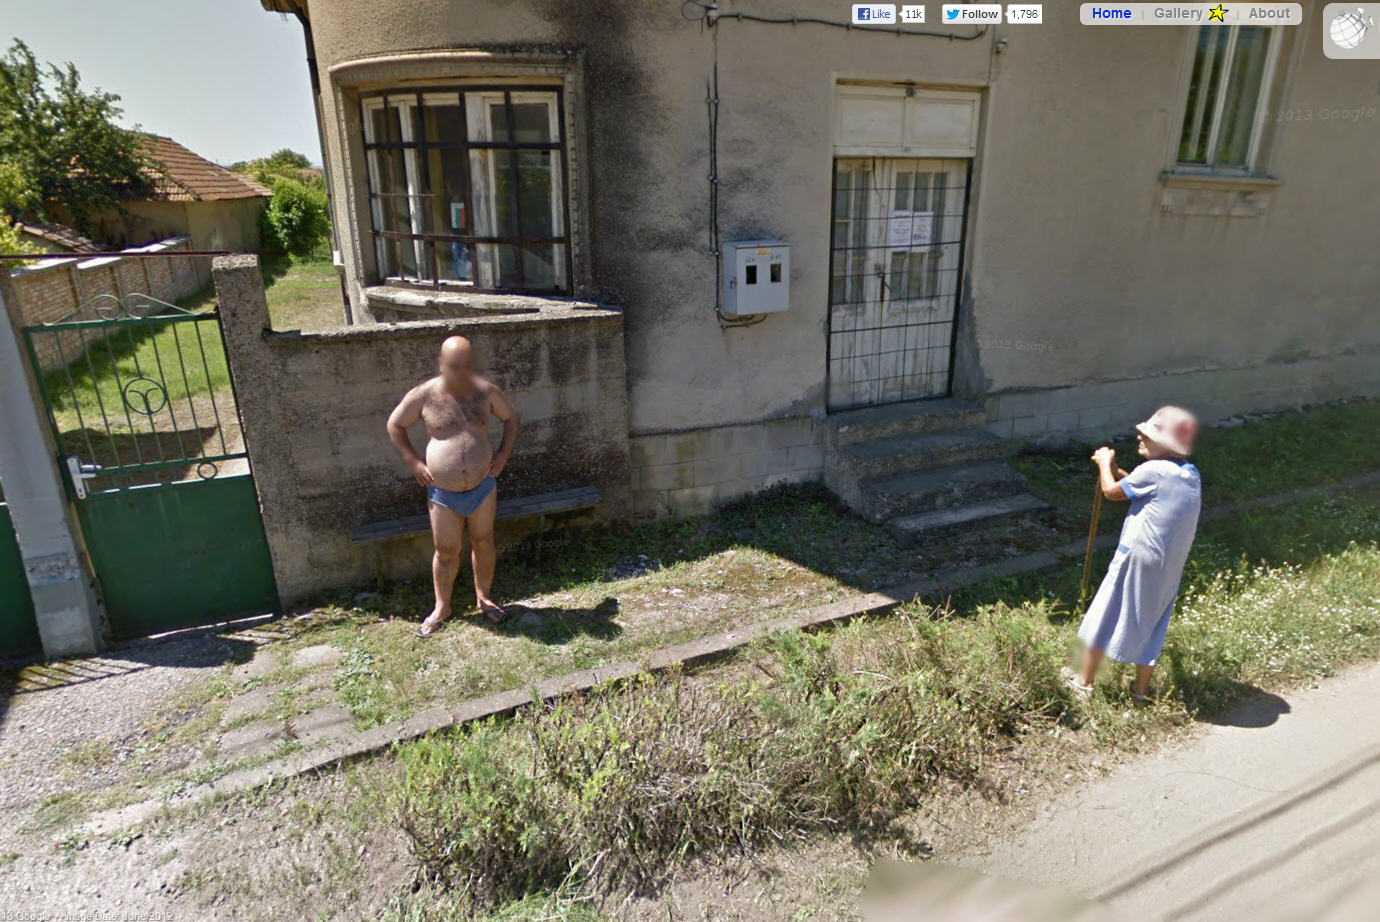 Is this old bulgarian fellow wearing underwear